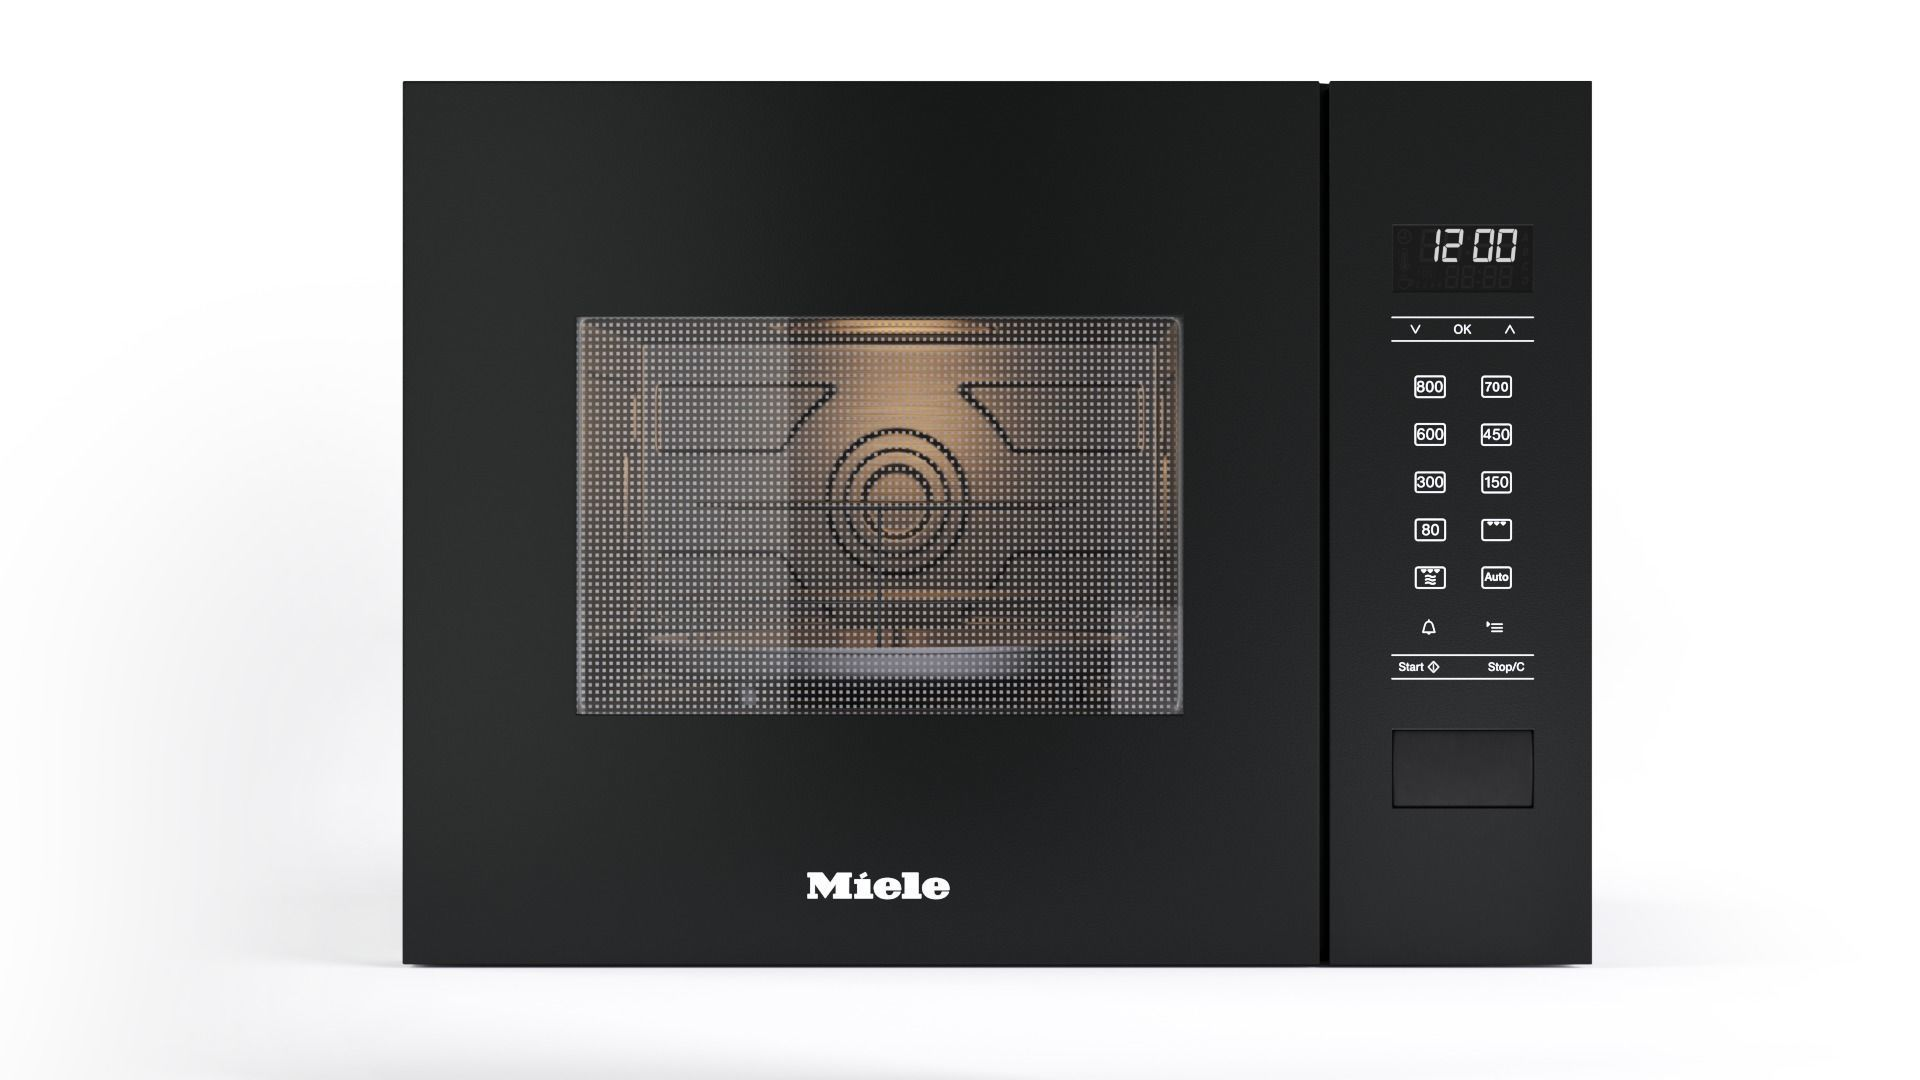 Built-in microwave oven - M 2224 SC - by Miele